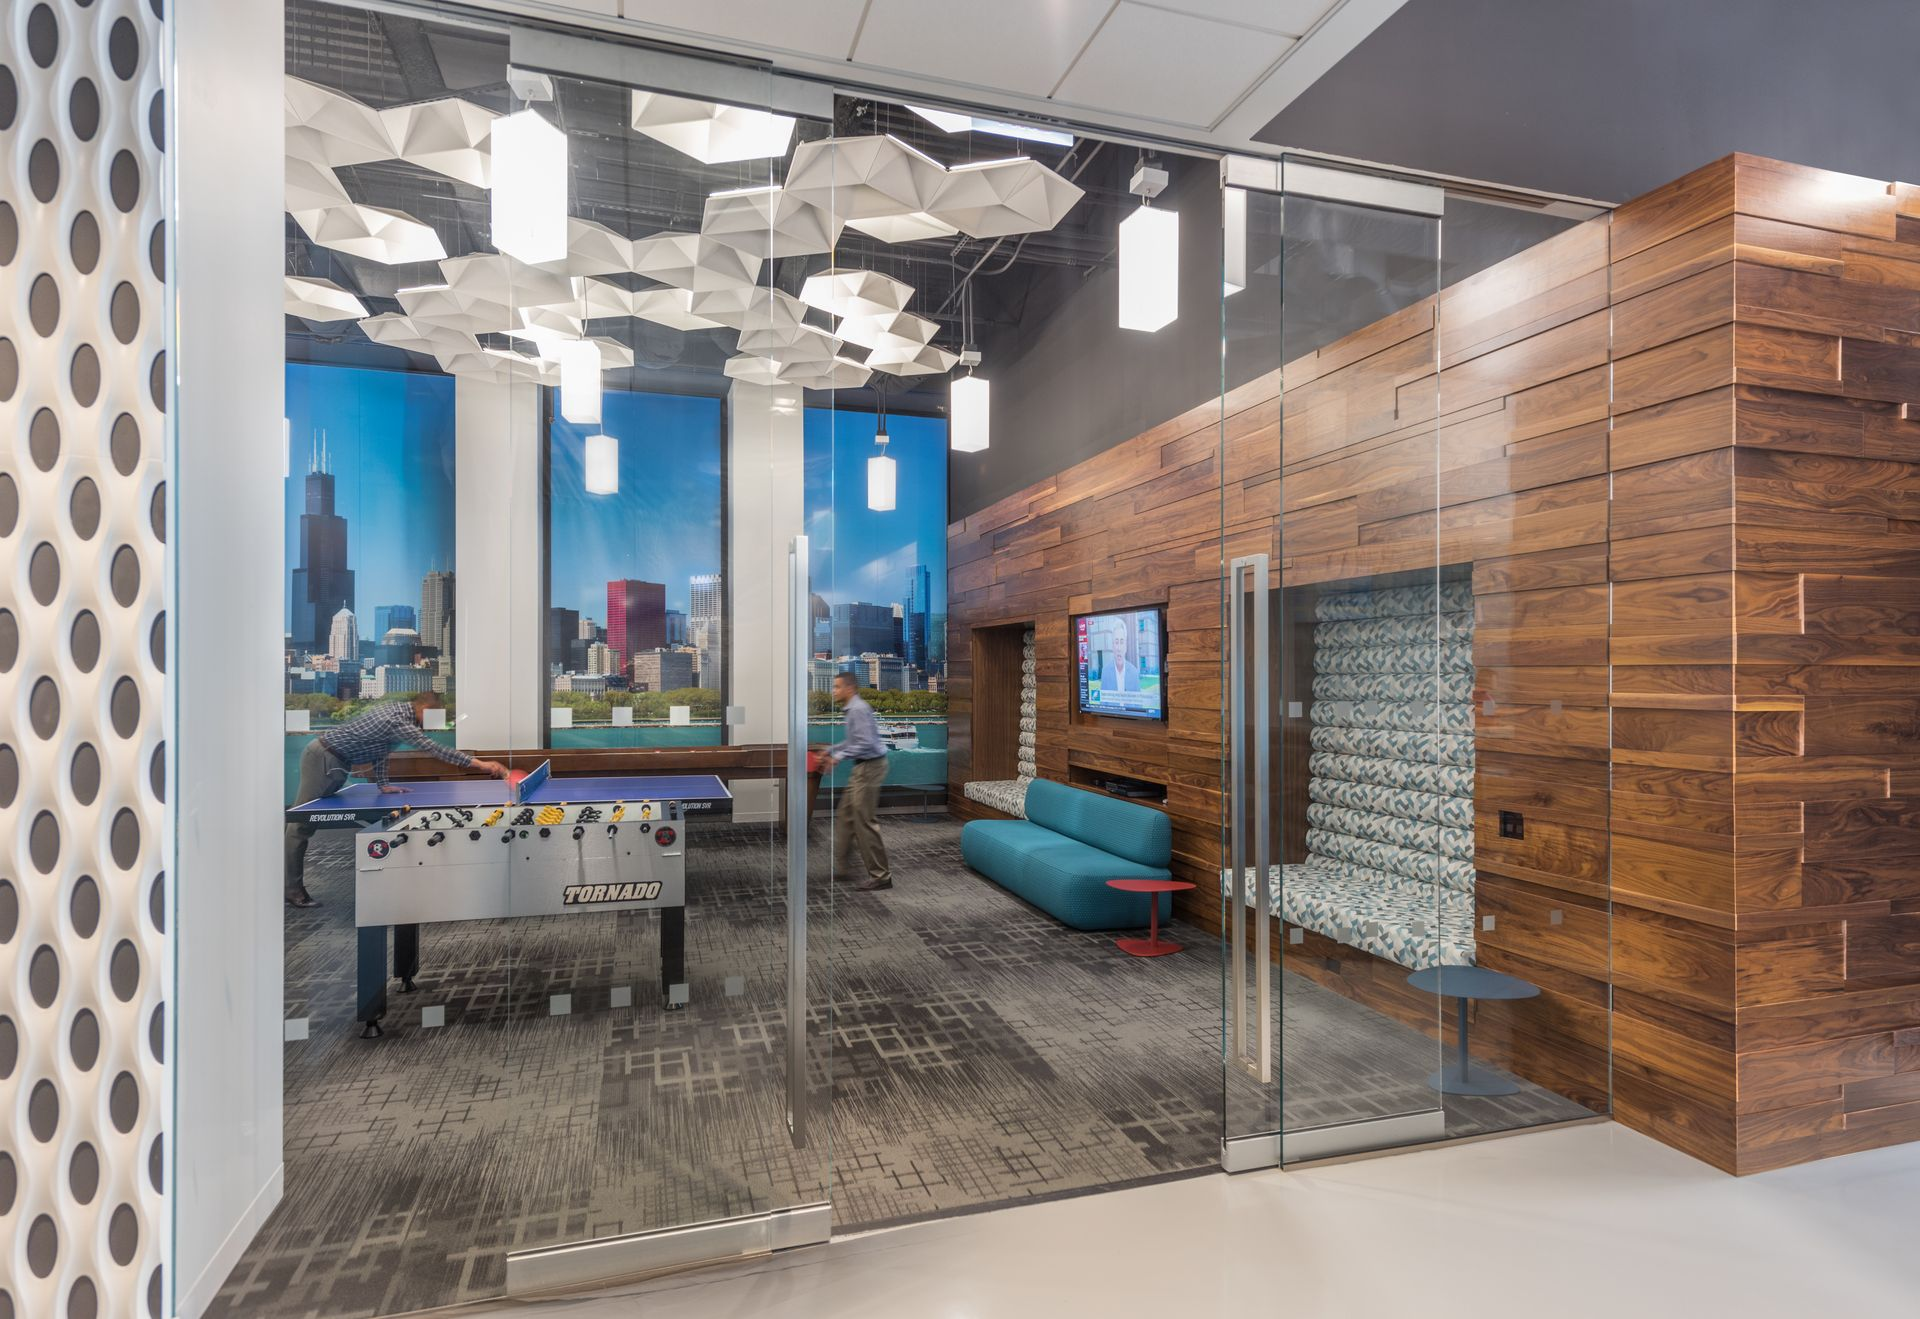 The game room at 222 Riverside in Chicago. Commercial real estate services and investment firm CBRE predicts 59.7 million square feet of office space will open before next year, which would be the largest annual addition since 2008.  James Steinkamp Photography